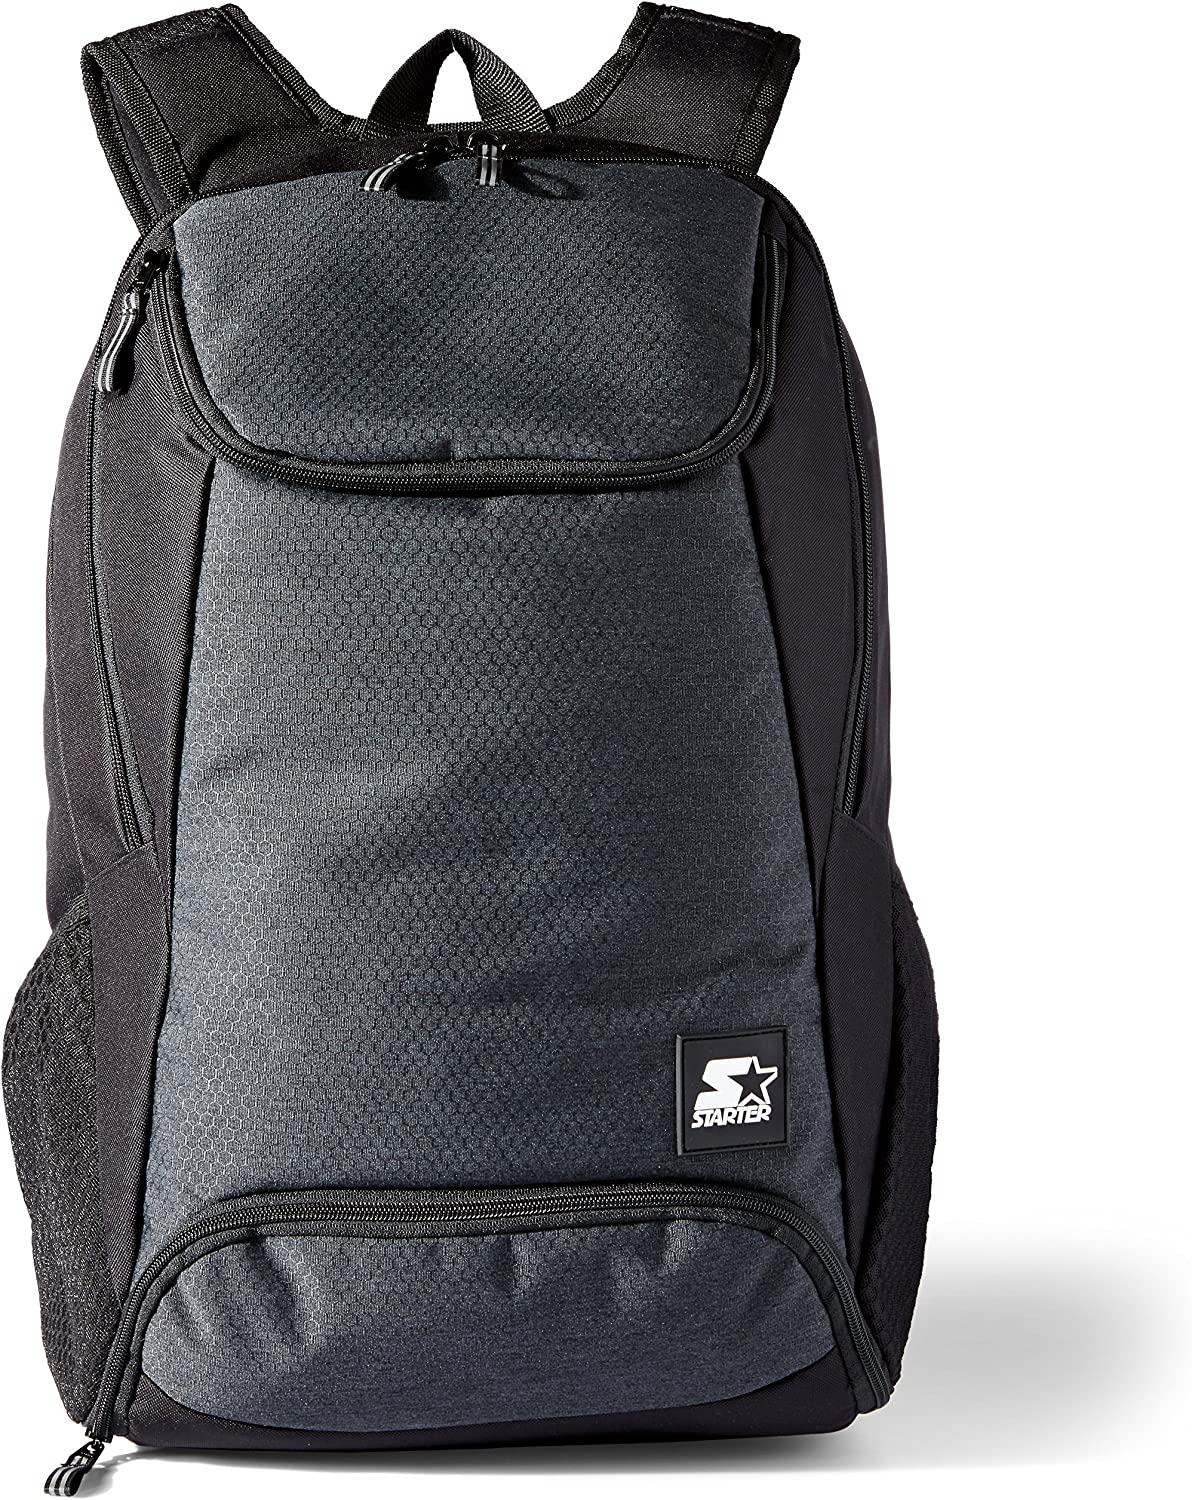 Starter Backpack with Laptop Sleeve and Shoe Pocket Black Exclusive One Size